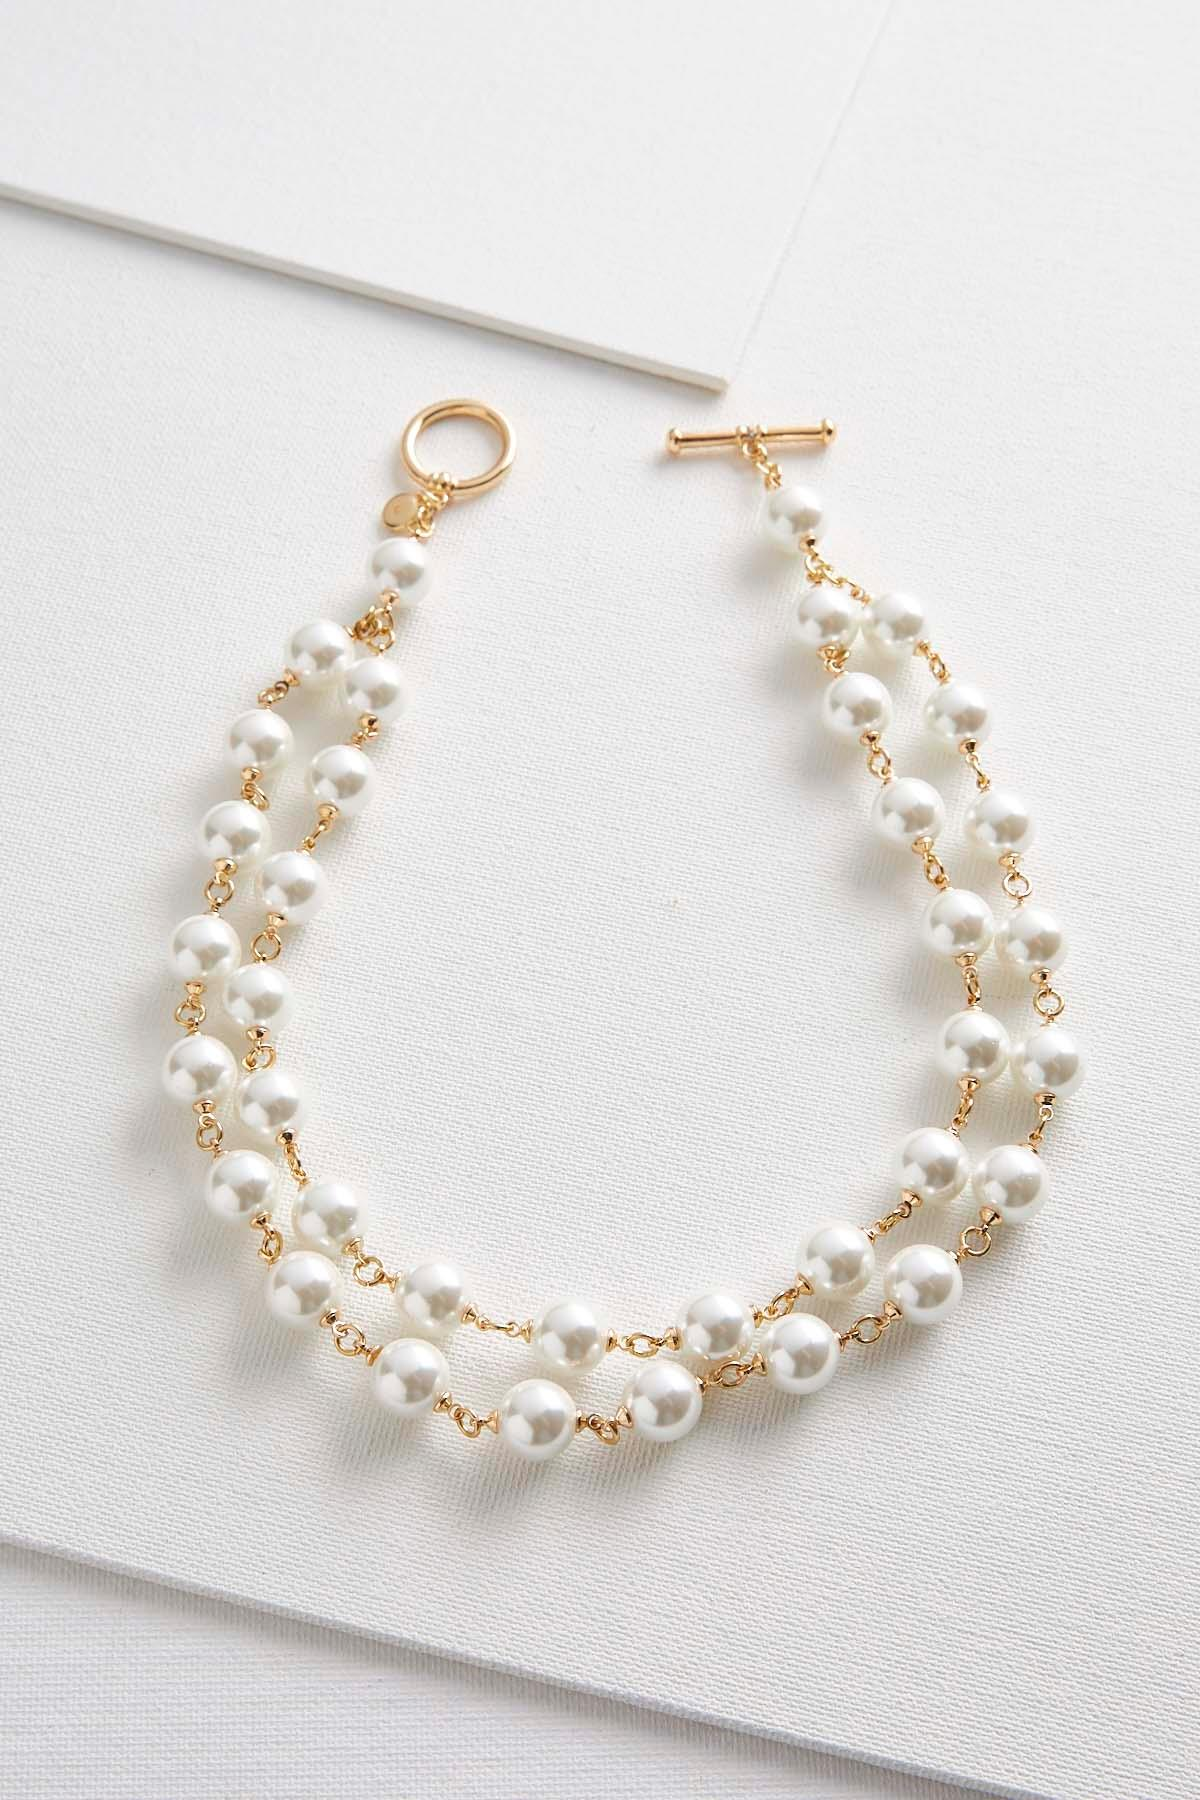 fwp gold clasp with freshwater round white products jewellery necklace pearl